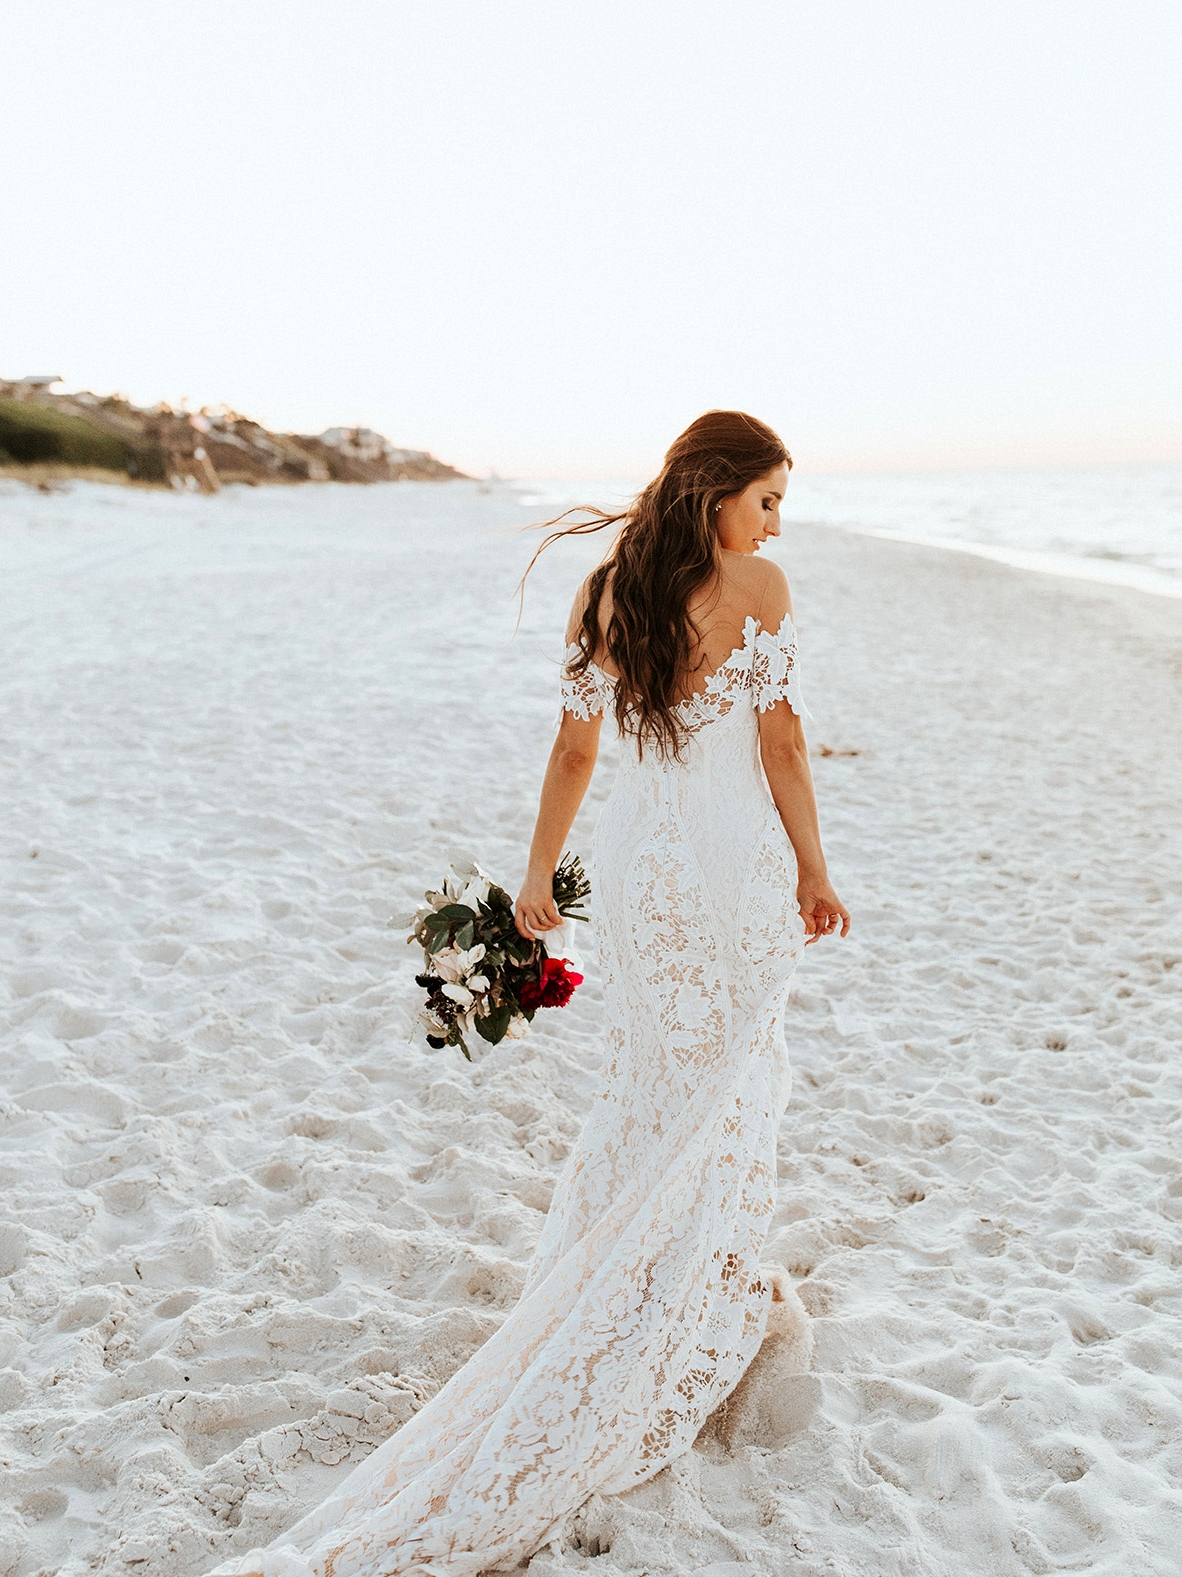 Carter Lace Wedding Dress by Lovers Society and Green Wedding Shoes on the Beach